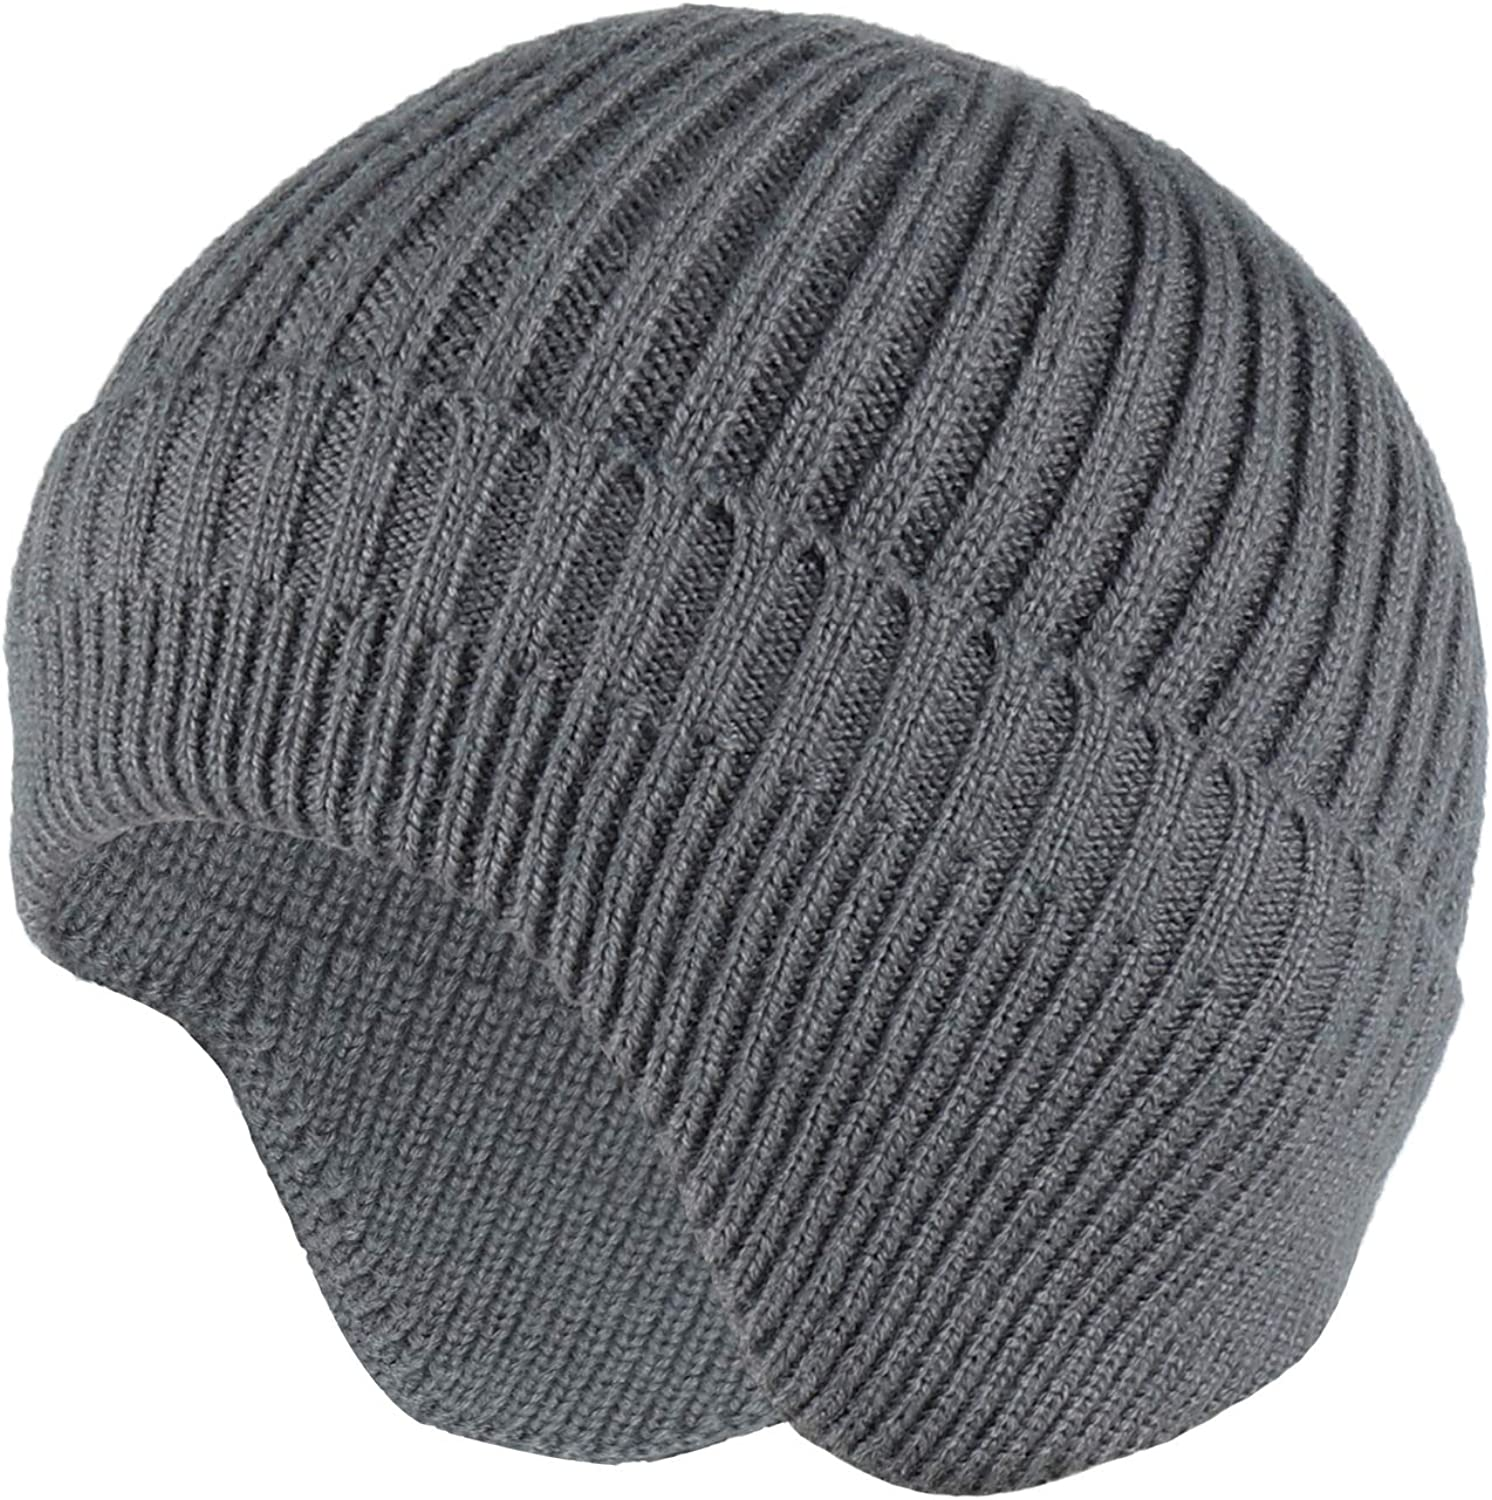 JITTY Beanie Hats for Men gift Women Knit with Helmet At the price Skull Cap Liner